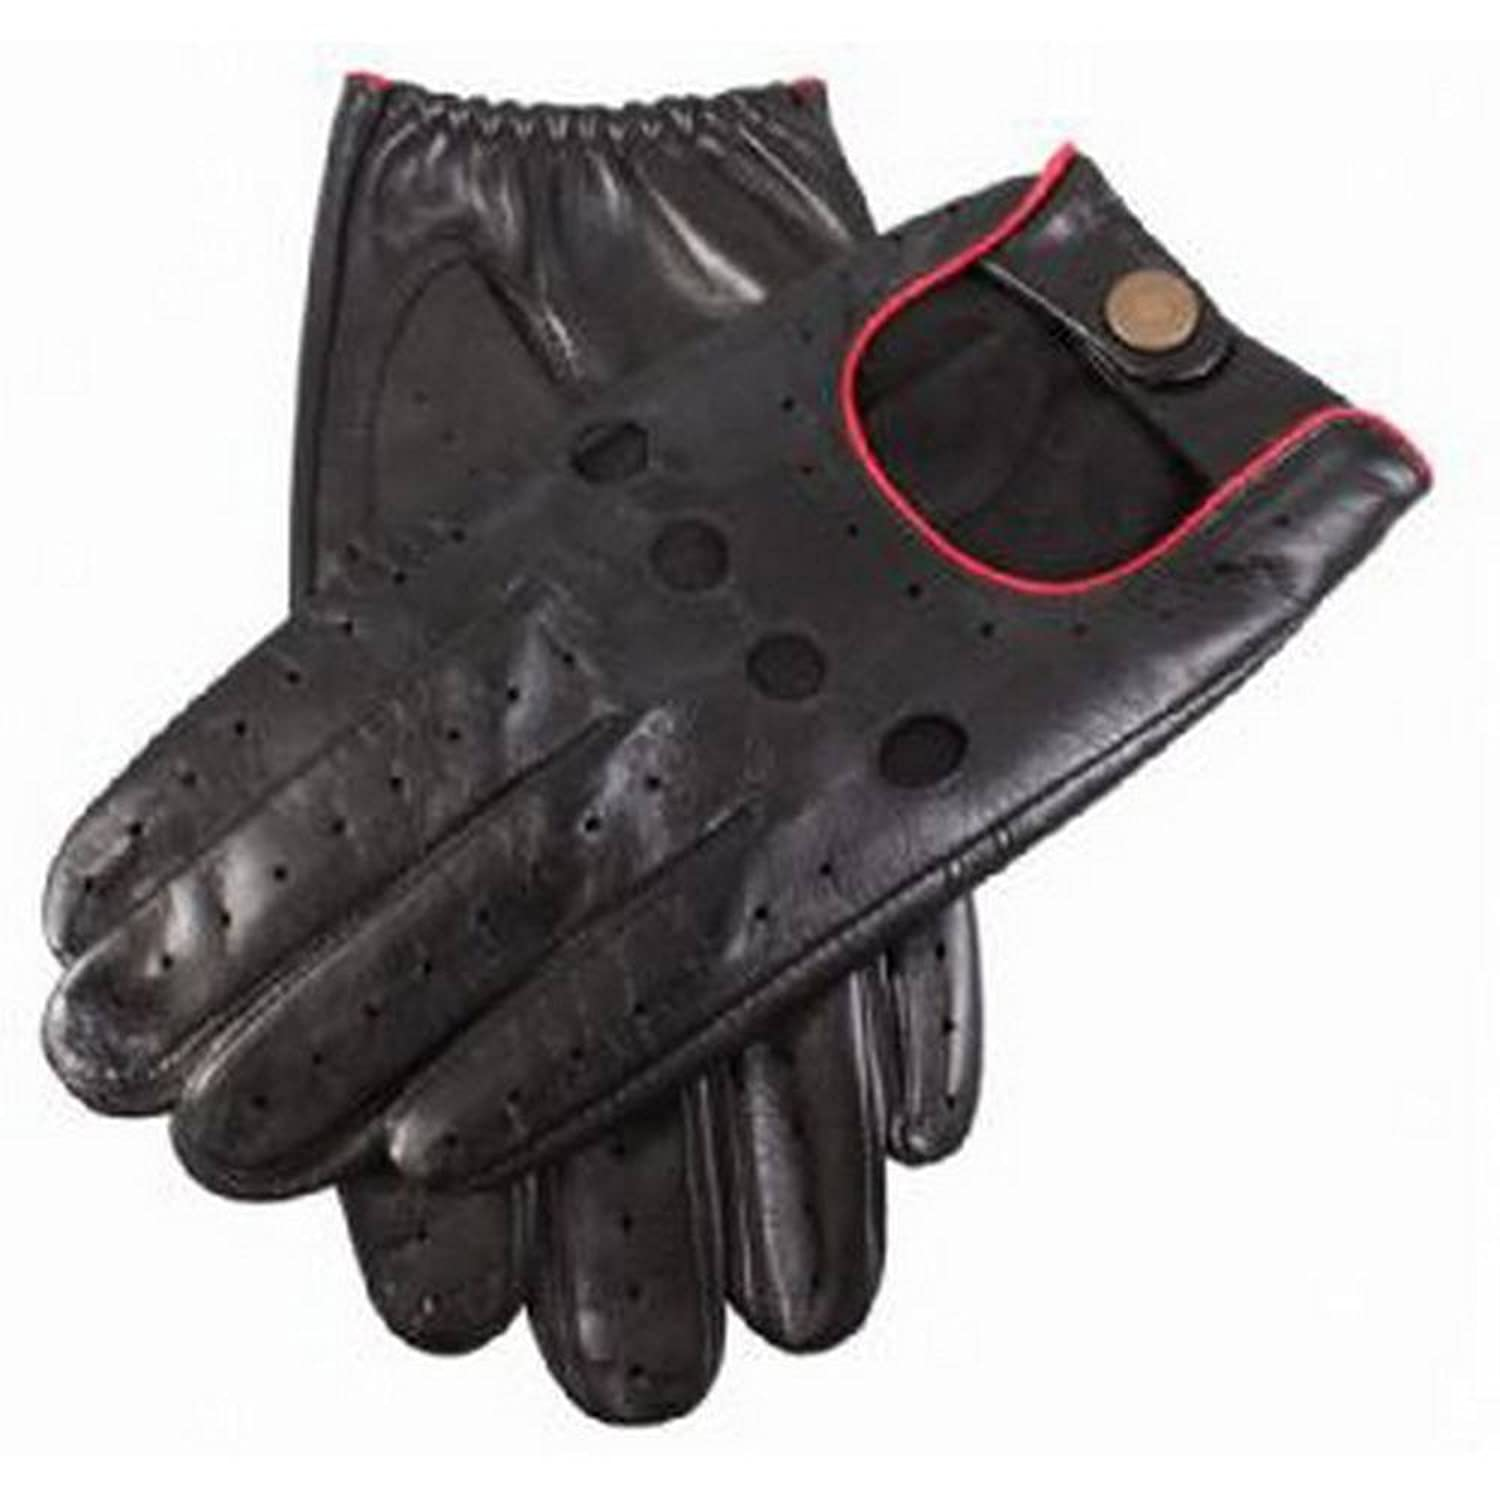 Red leather driving gloves mens - Amazon Com Black And Red Delta Leather Driving Gloves By Dents 7 8 Dents Clothing